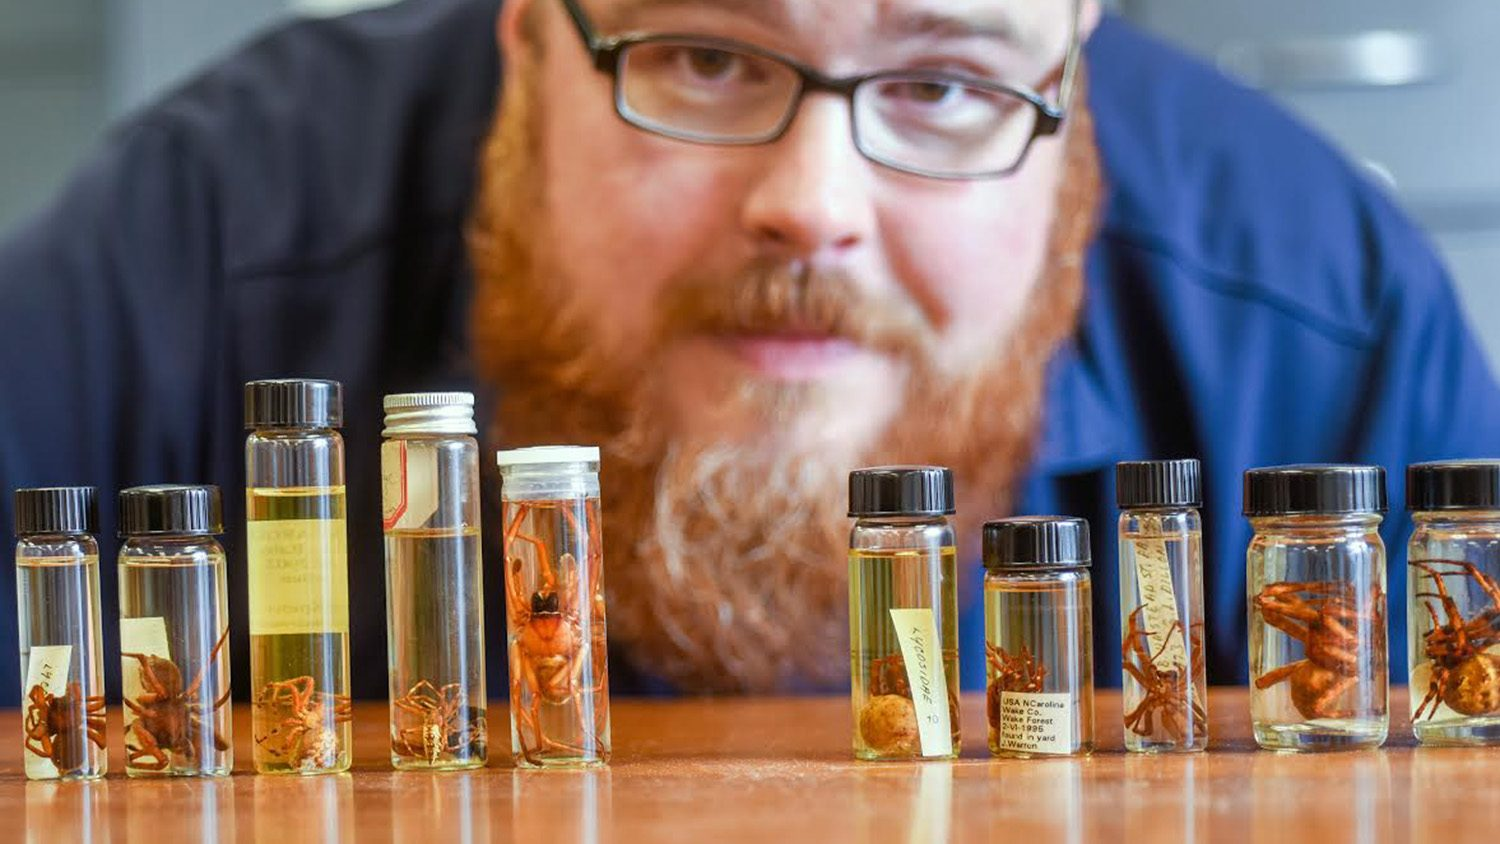 Photo of Matt Bertone, Extension Associate in Entomology